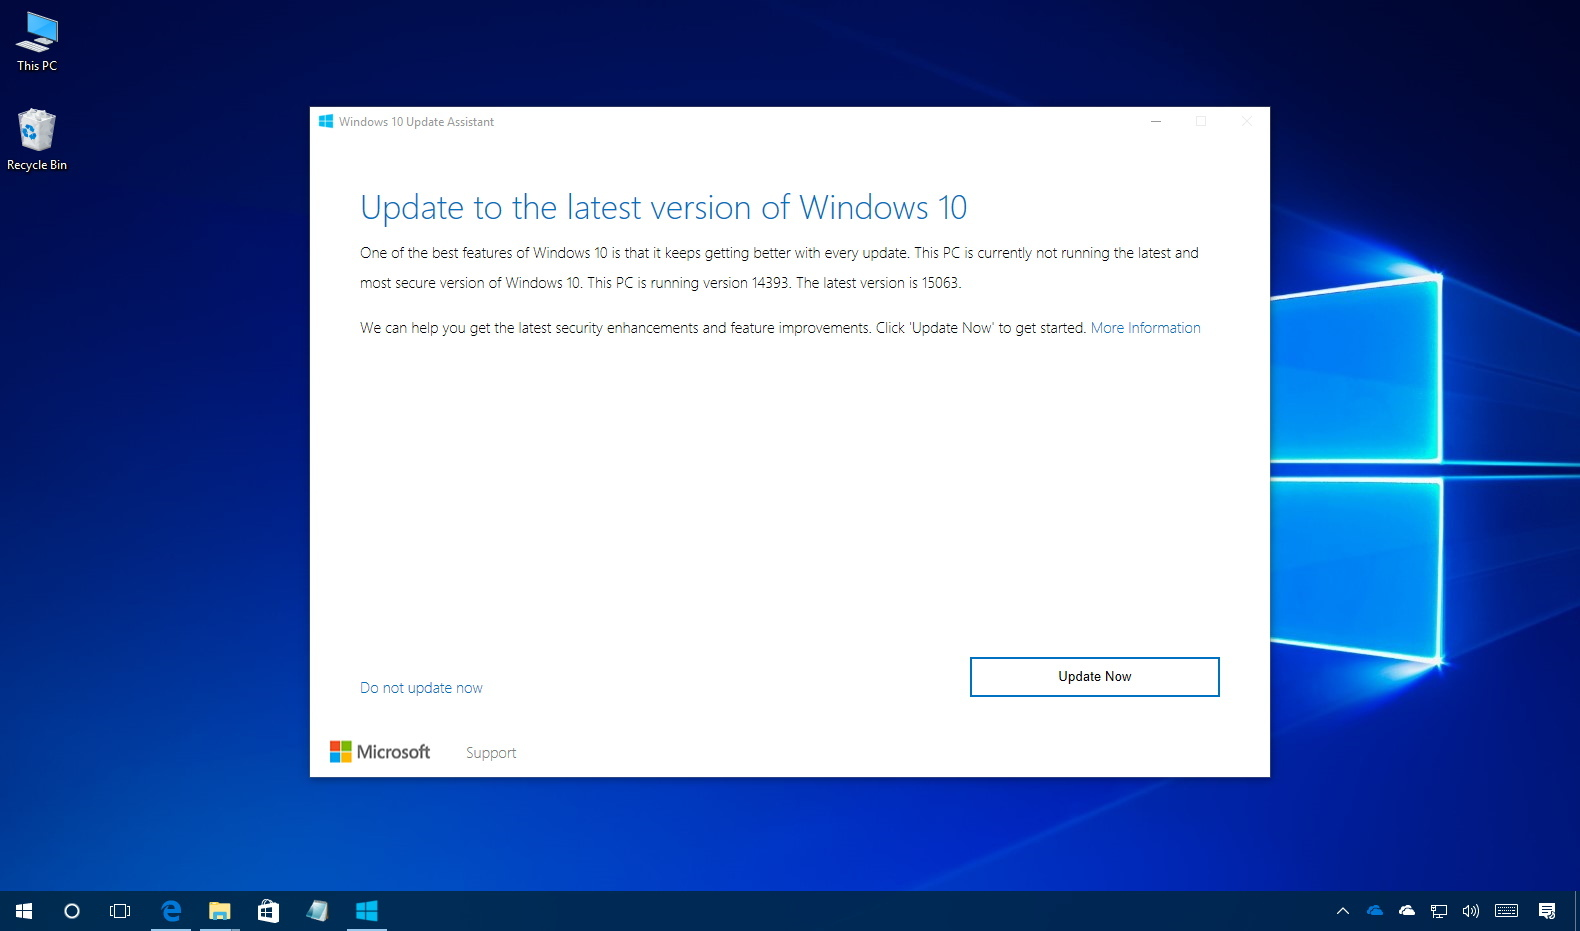 Windows 10 Update Assistant